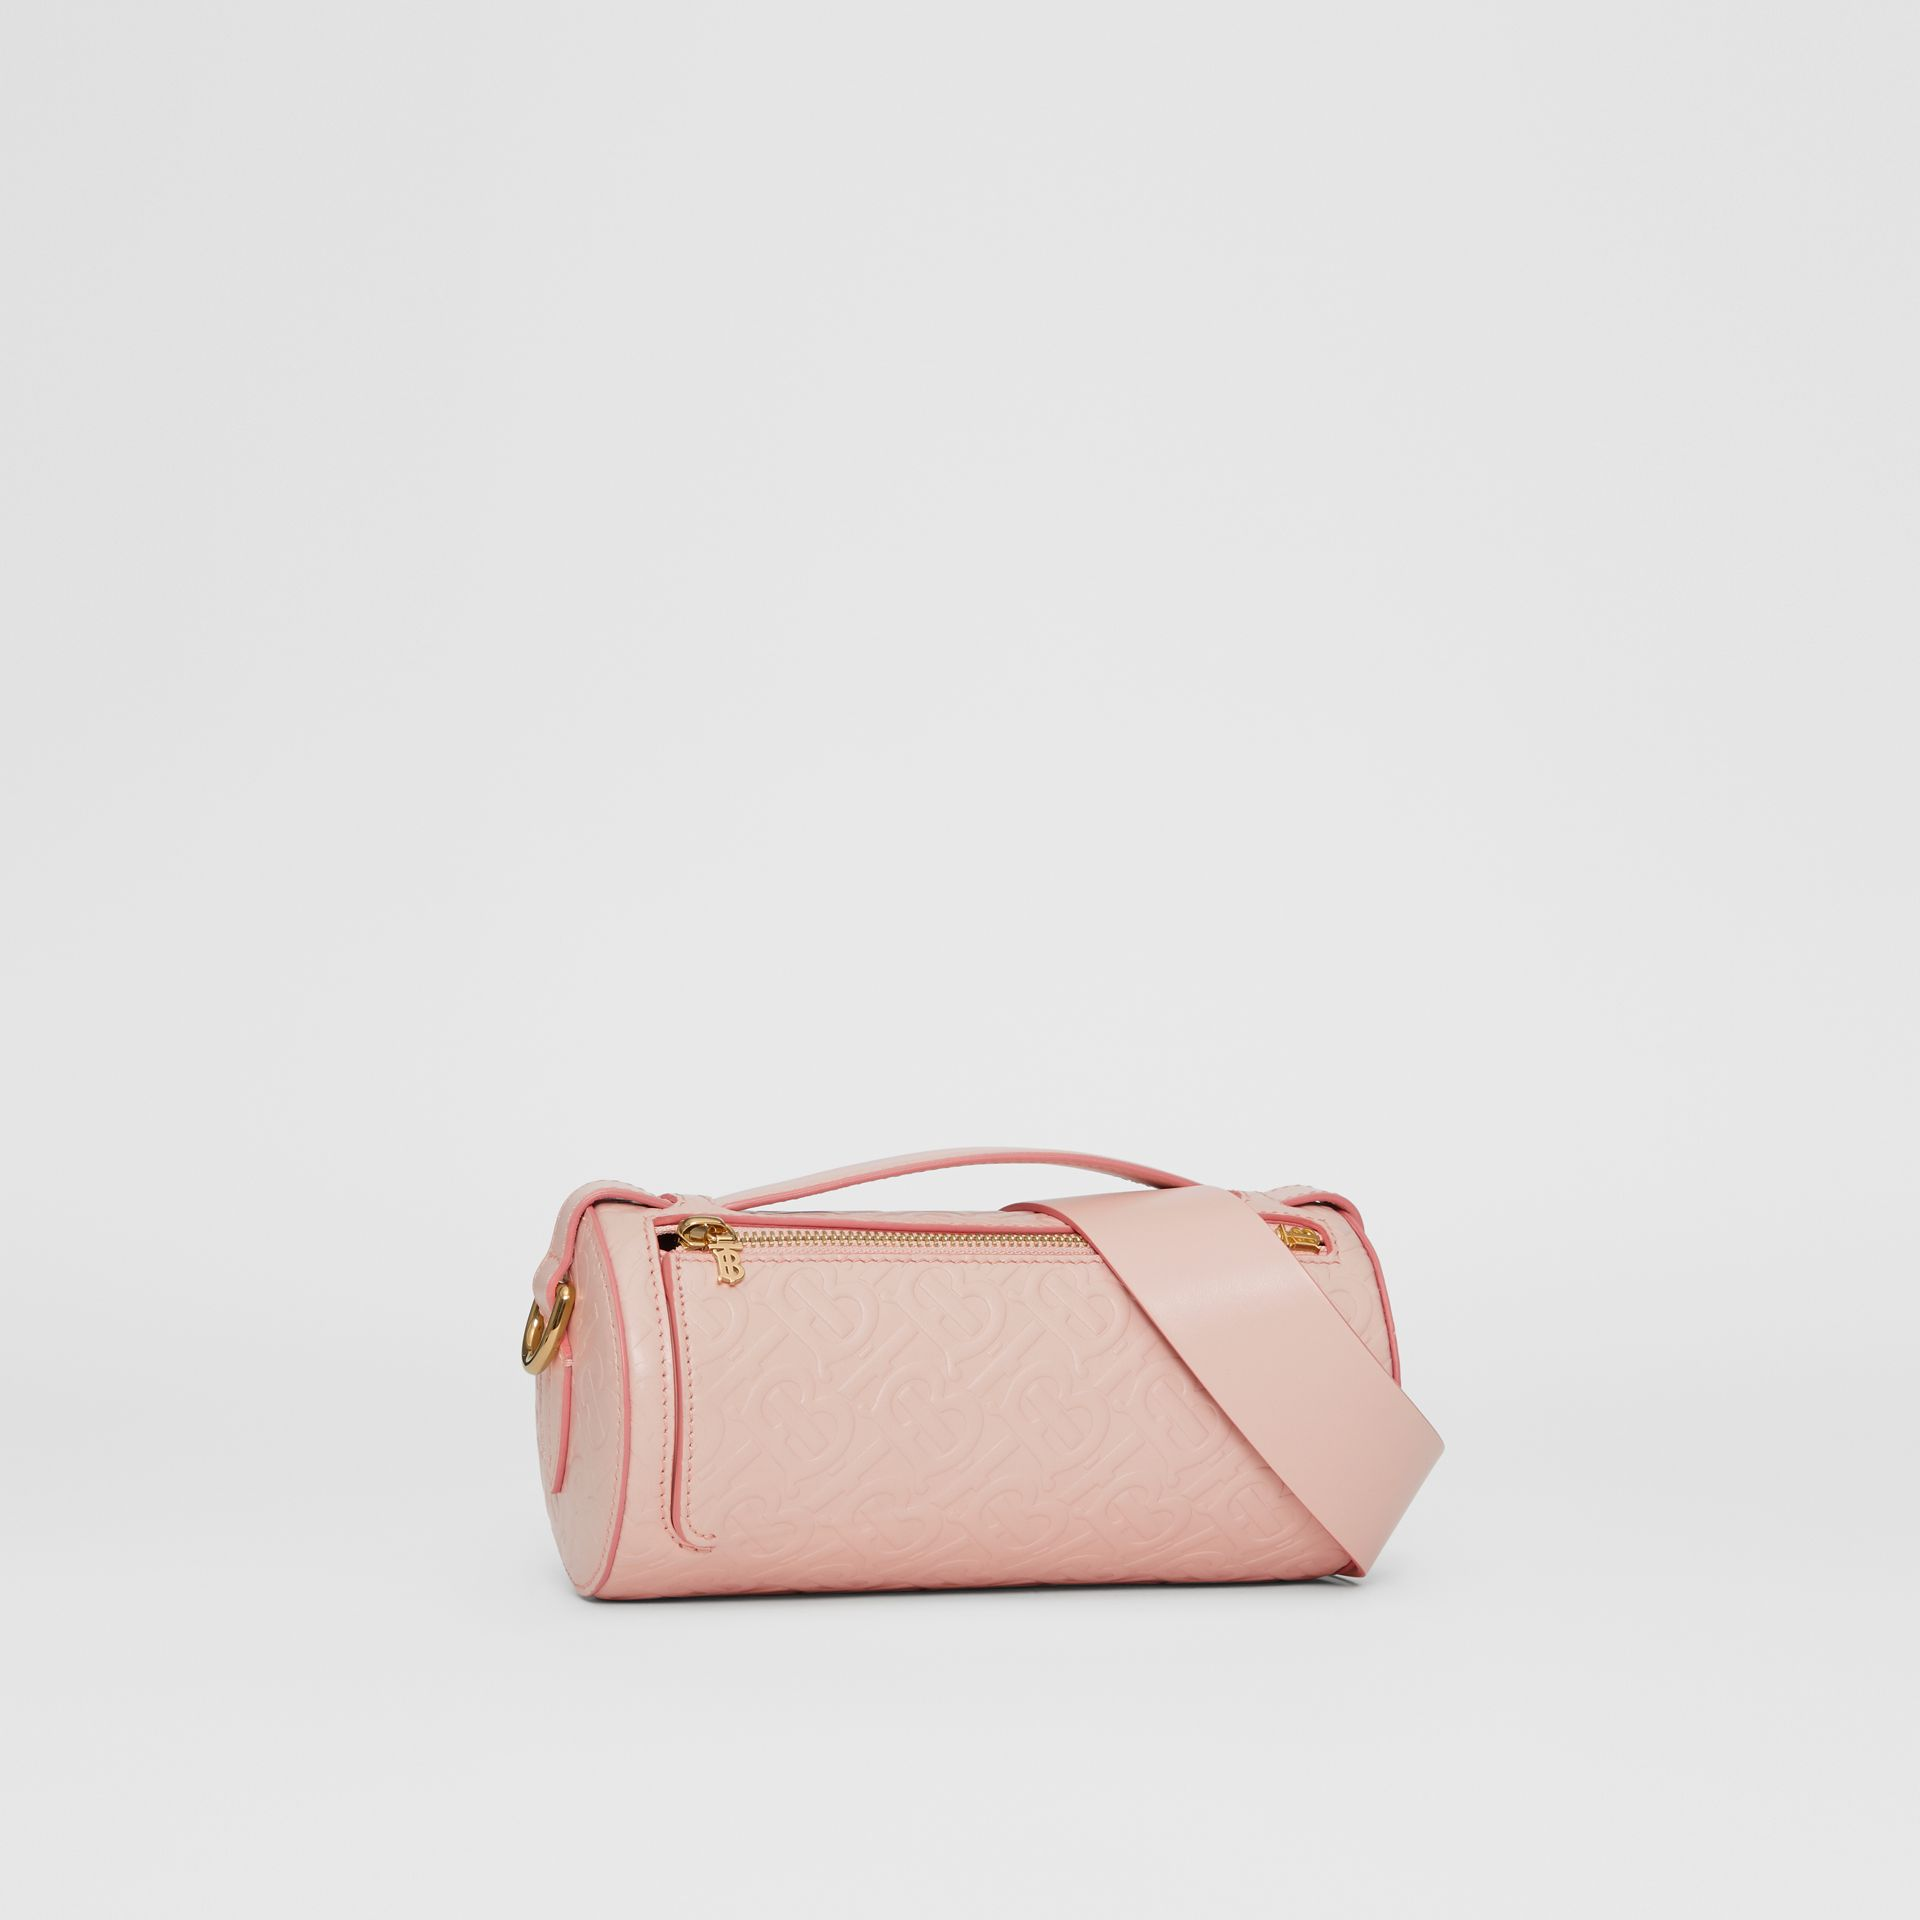 Sac The Barrel en cuir Monogram (Beige Rose) - Femme | Burberry - photo de la galerie 6